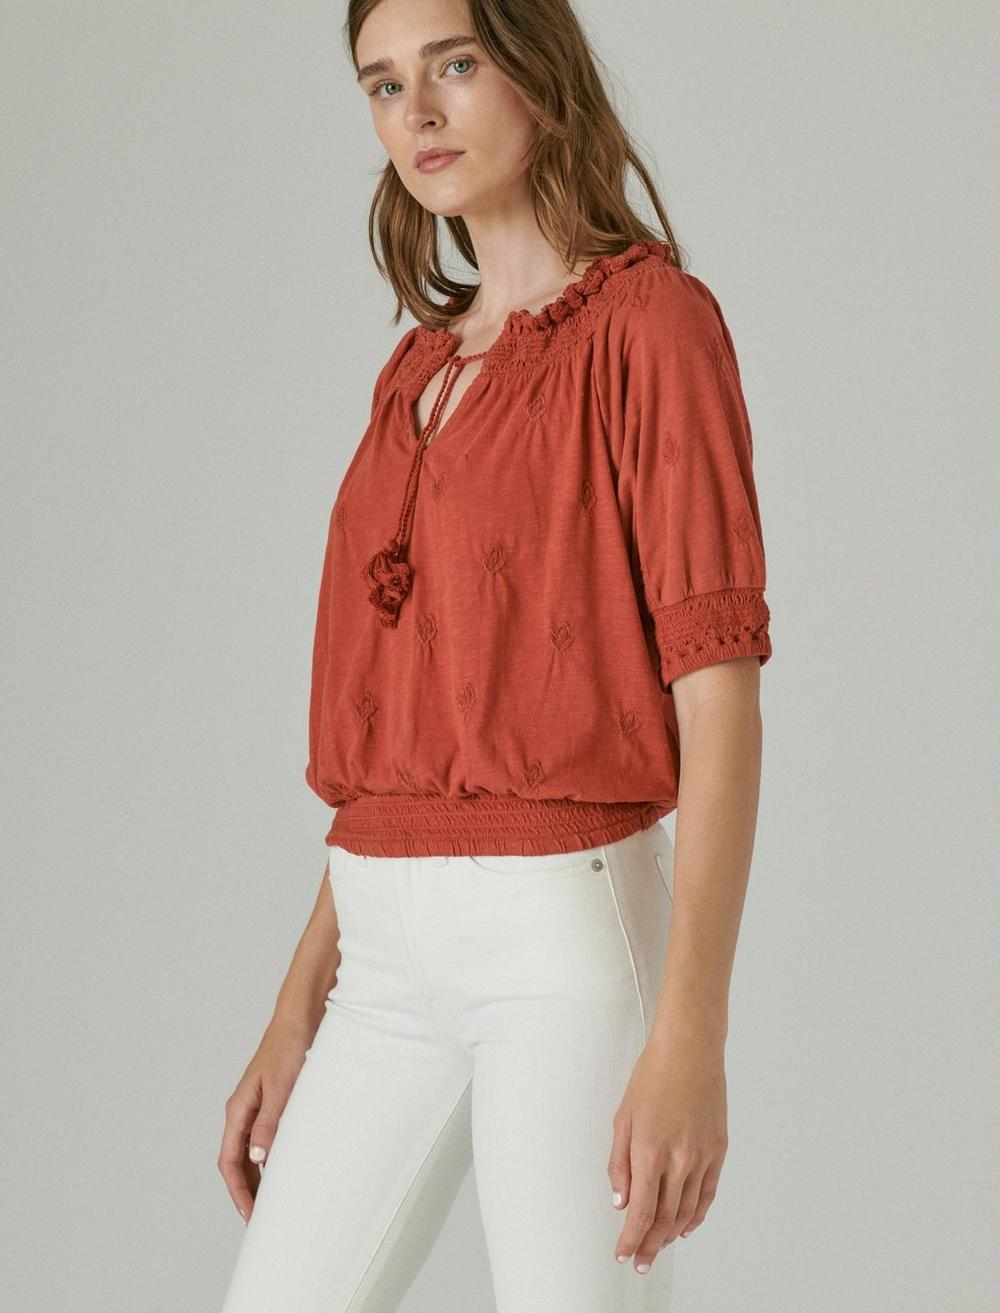 SHORT SLEEVE TIE FRONT PEASANT, image 2